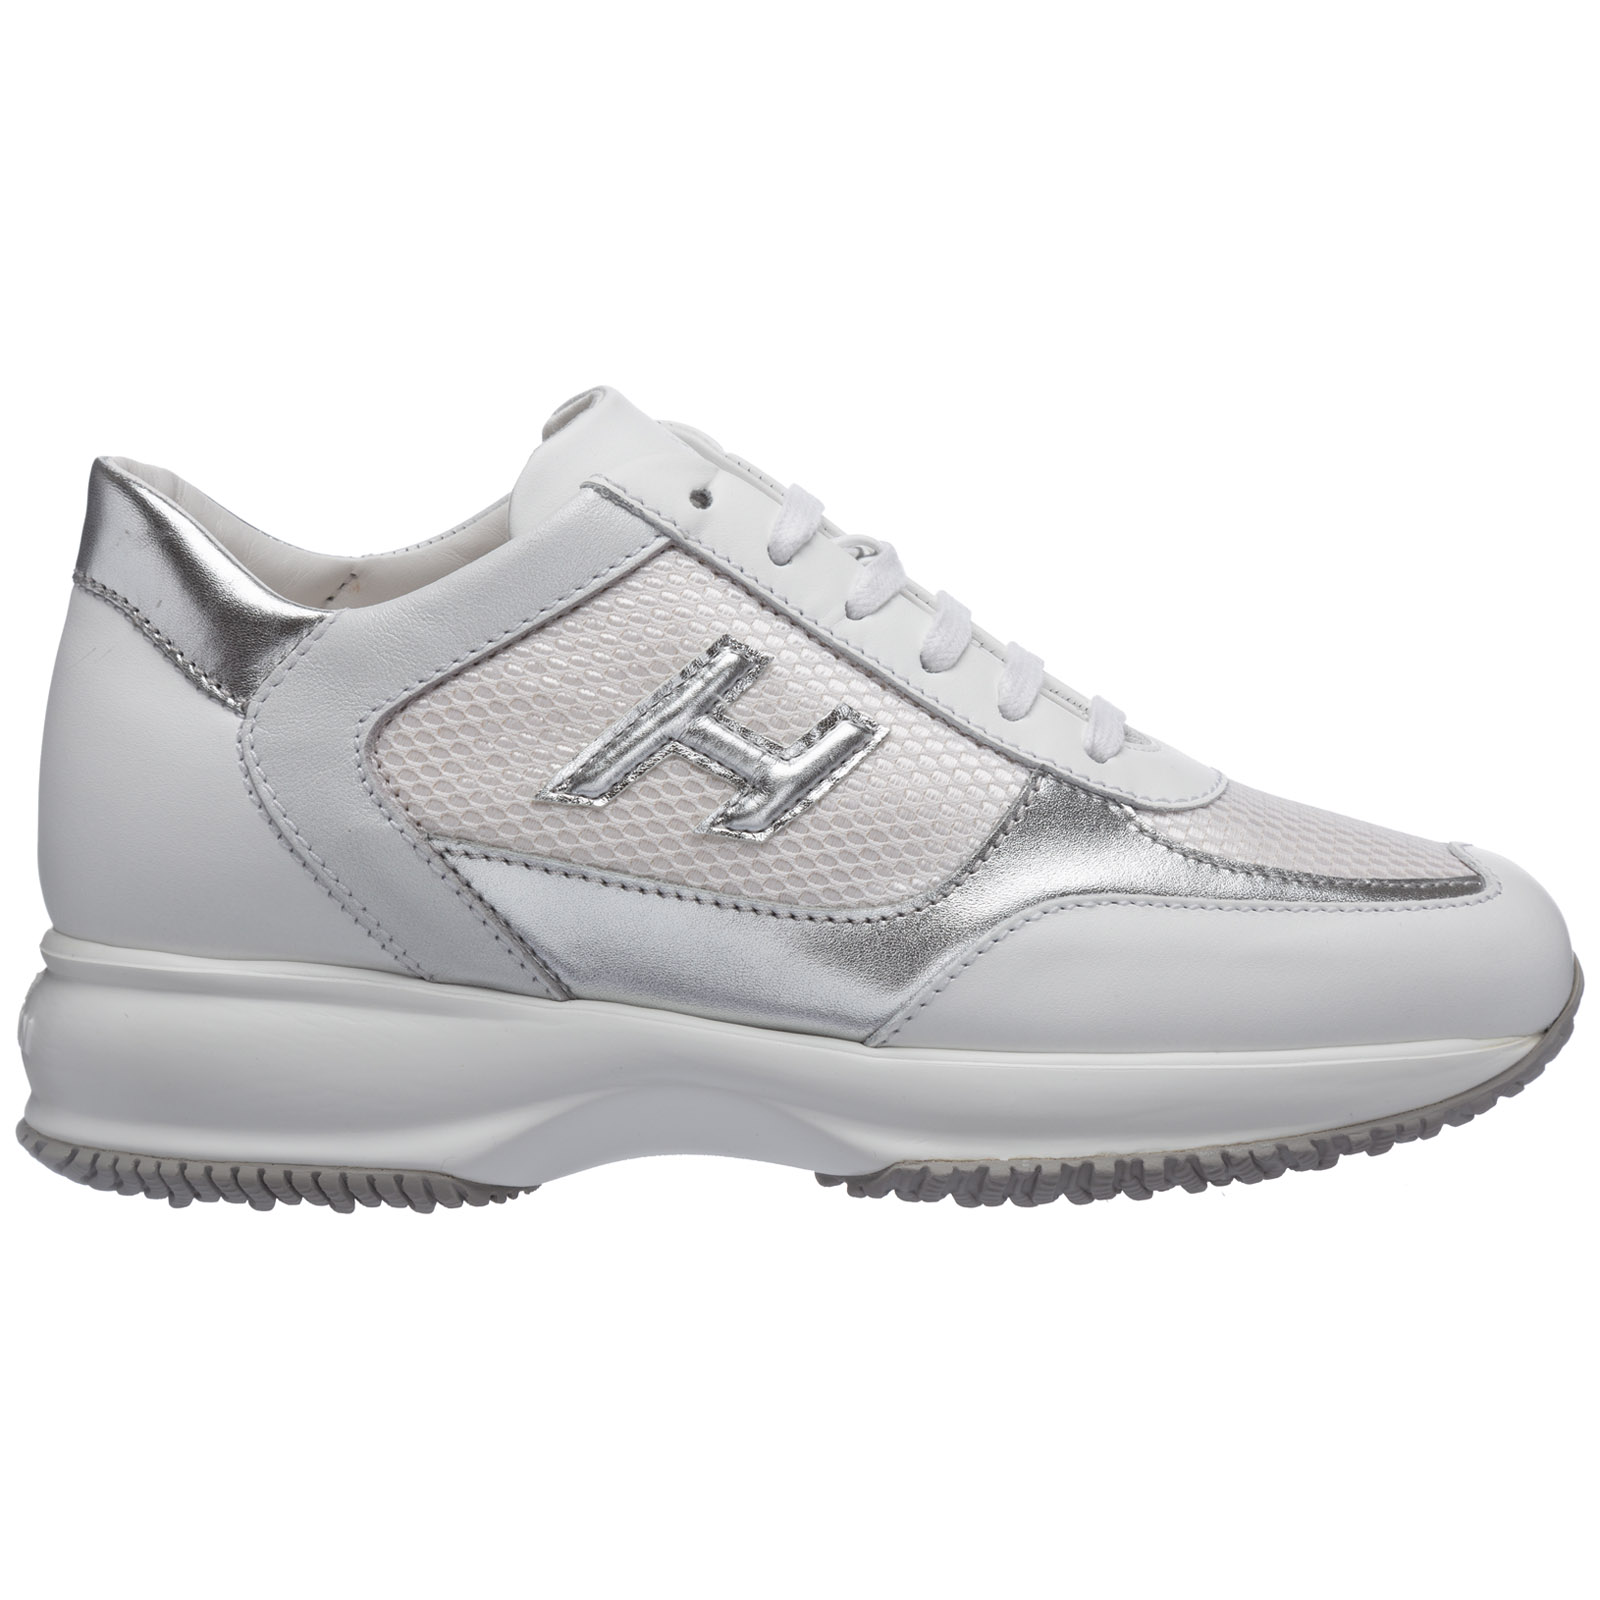 Women's Shoes Leather Trainers Sneakers Interactive In White